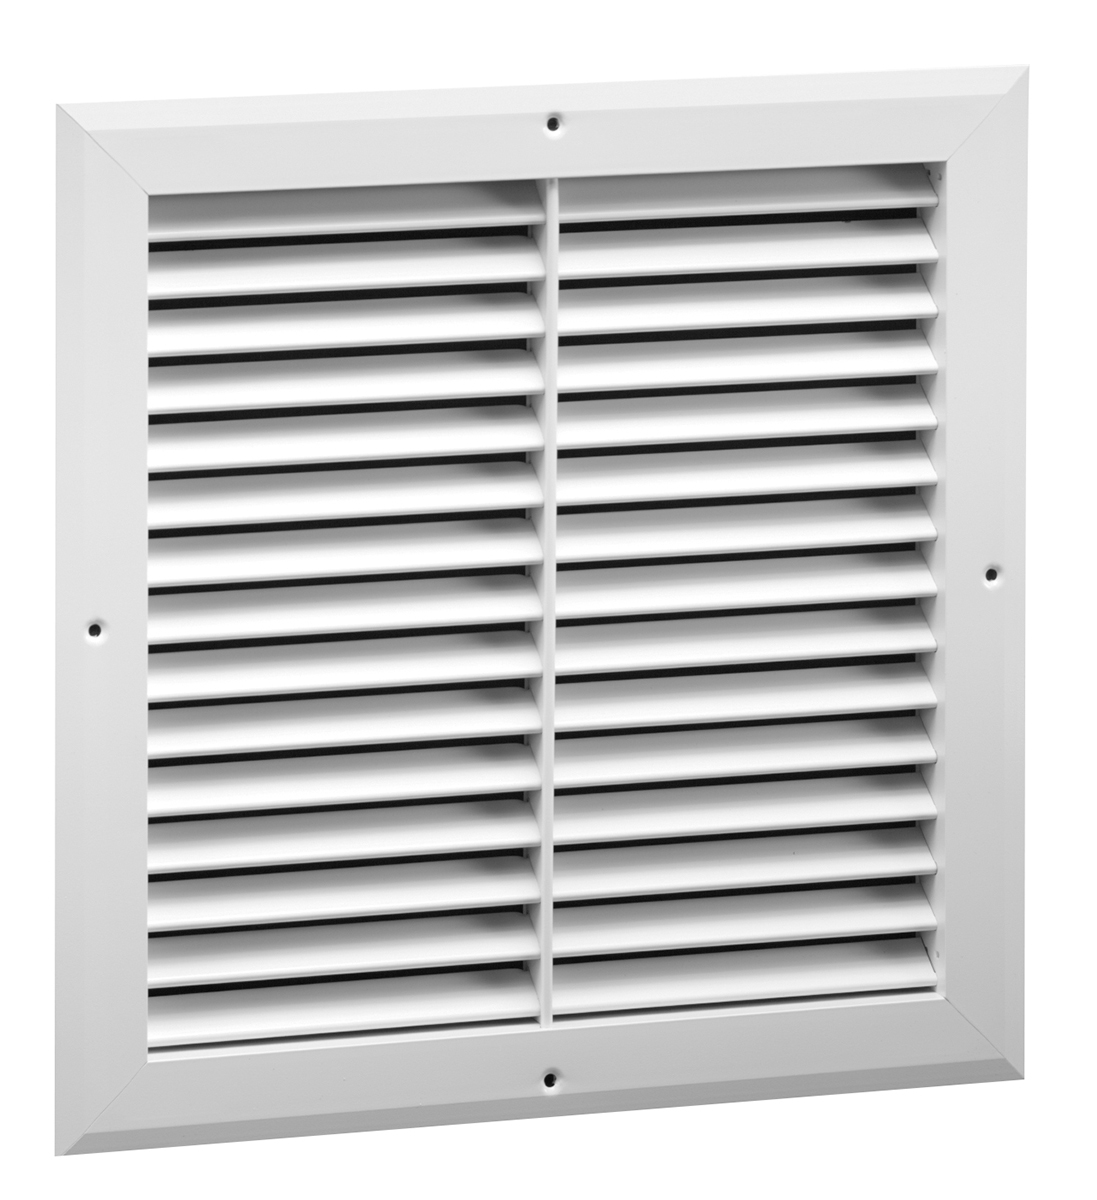 #242424 RA204 Aluminum Fixed Bar Return Grille AmeriFlow Highly Rated 2849 Floor Air Return Grille wallpapers with 1097x1200 px on helpvideos.info - Air Conditioners, Air Coolers and more